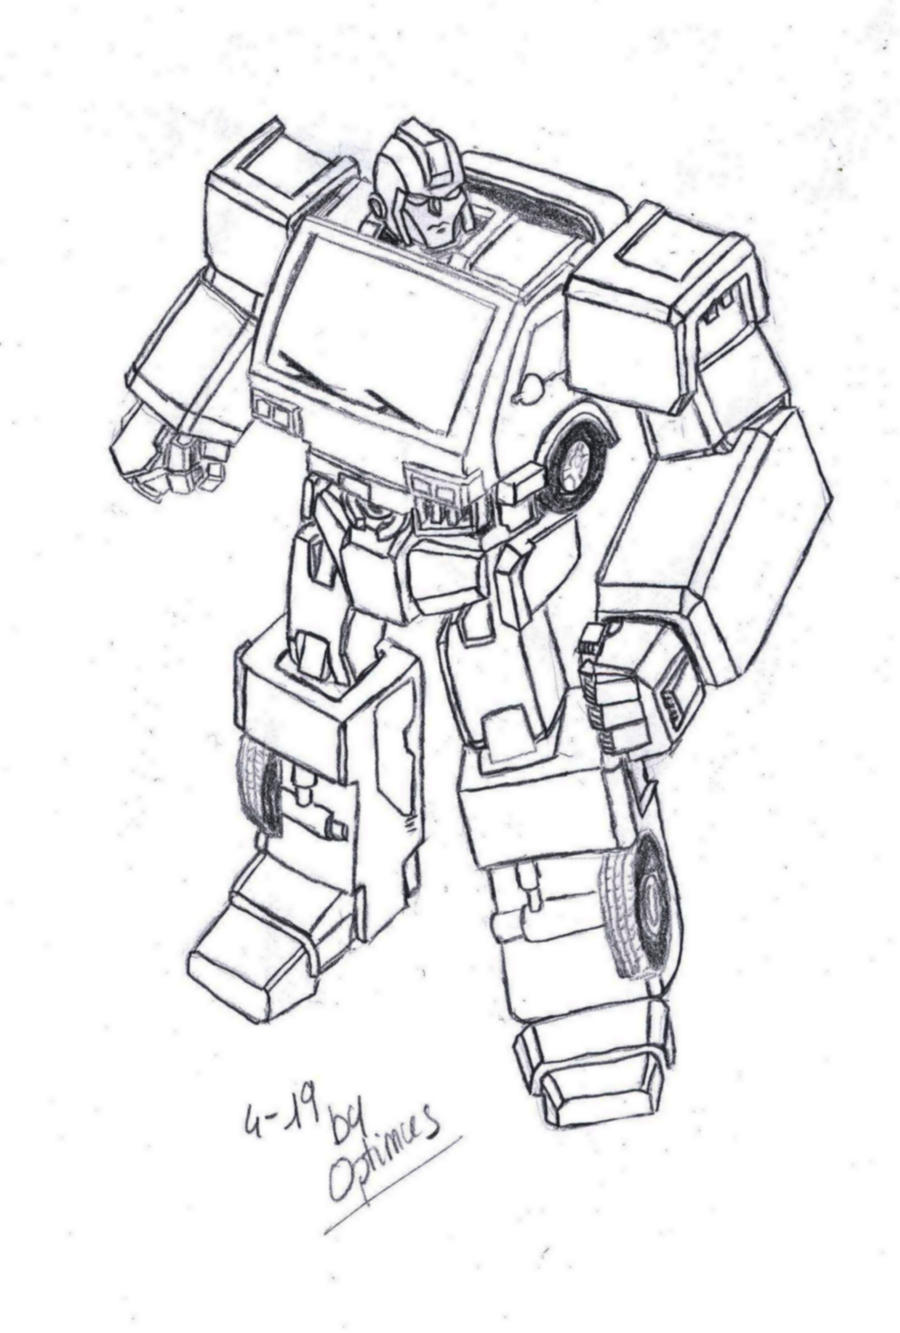 Ironhide g1 by optimusprime29 on deviantart for Transformers g1 coloring pages